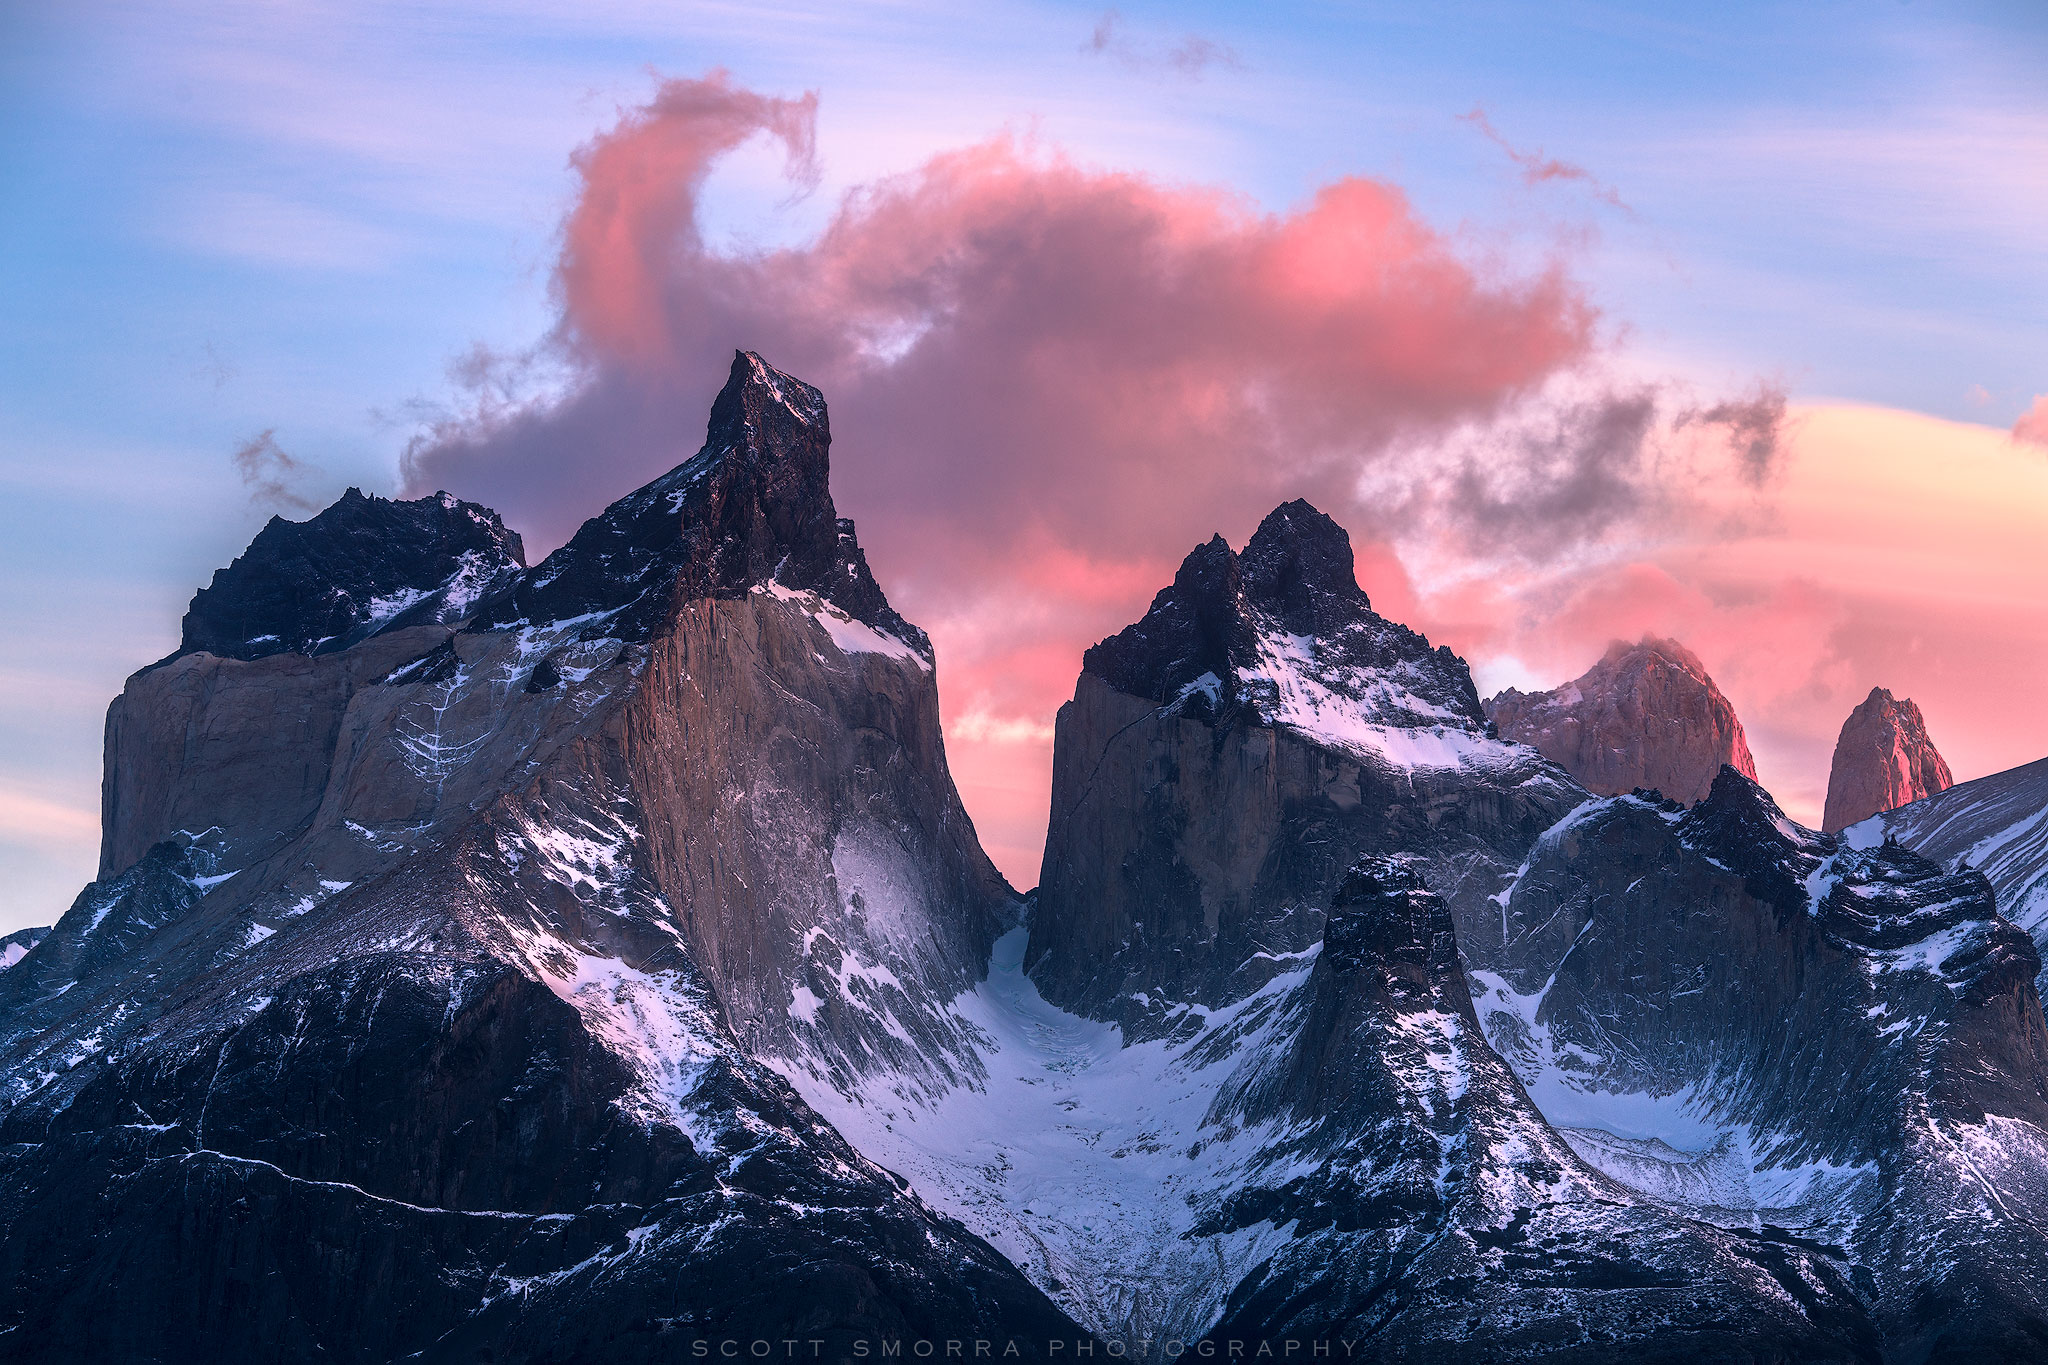 Fine Art Limited Edition of 50 - A cloud formation shaped like a scorpion tail drifts above the Cuernos del Paine at sunrise...